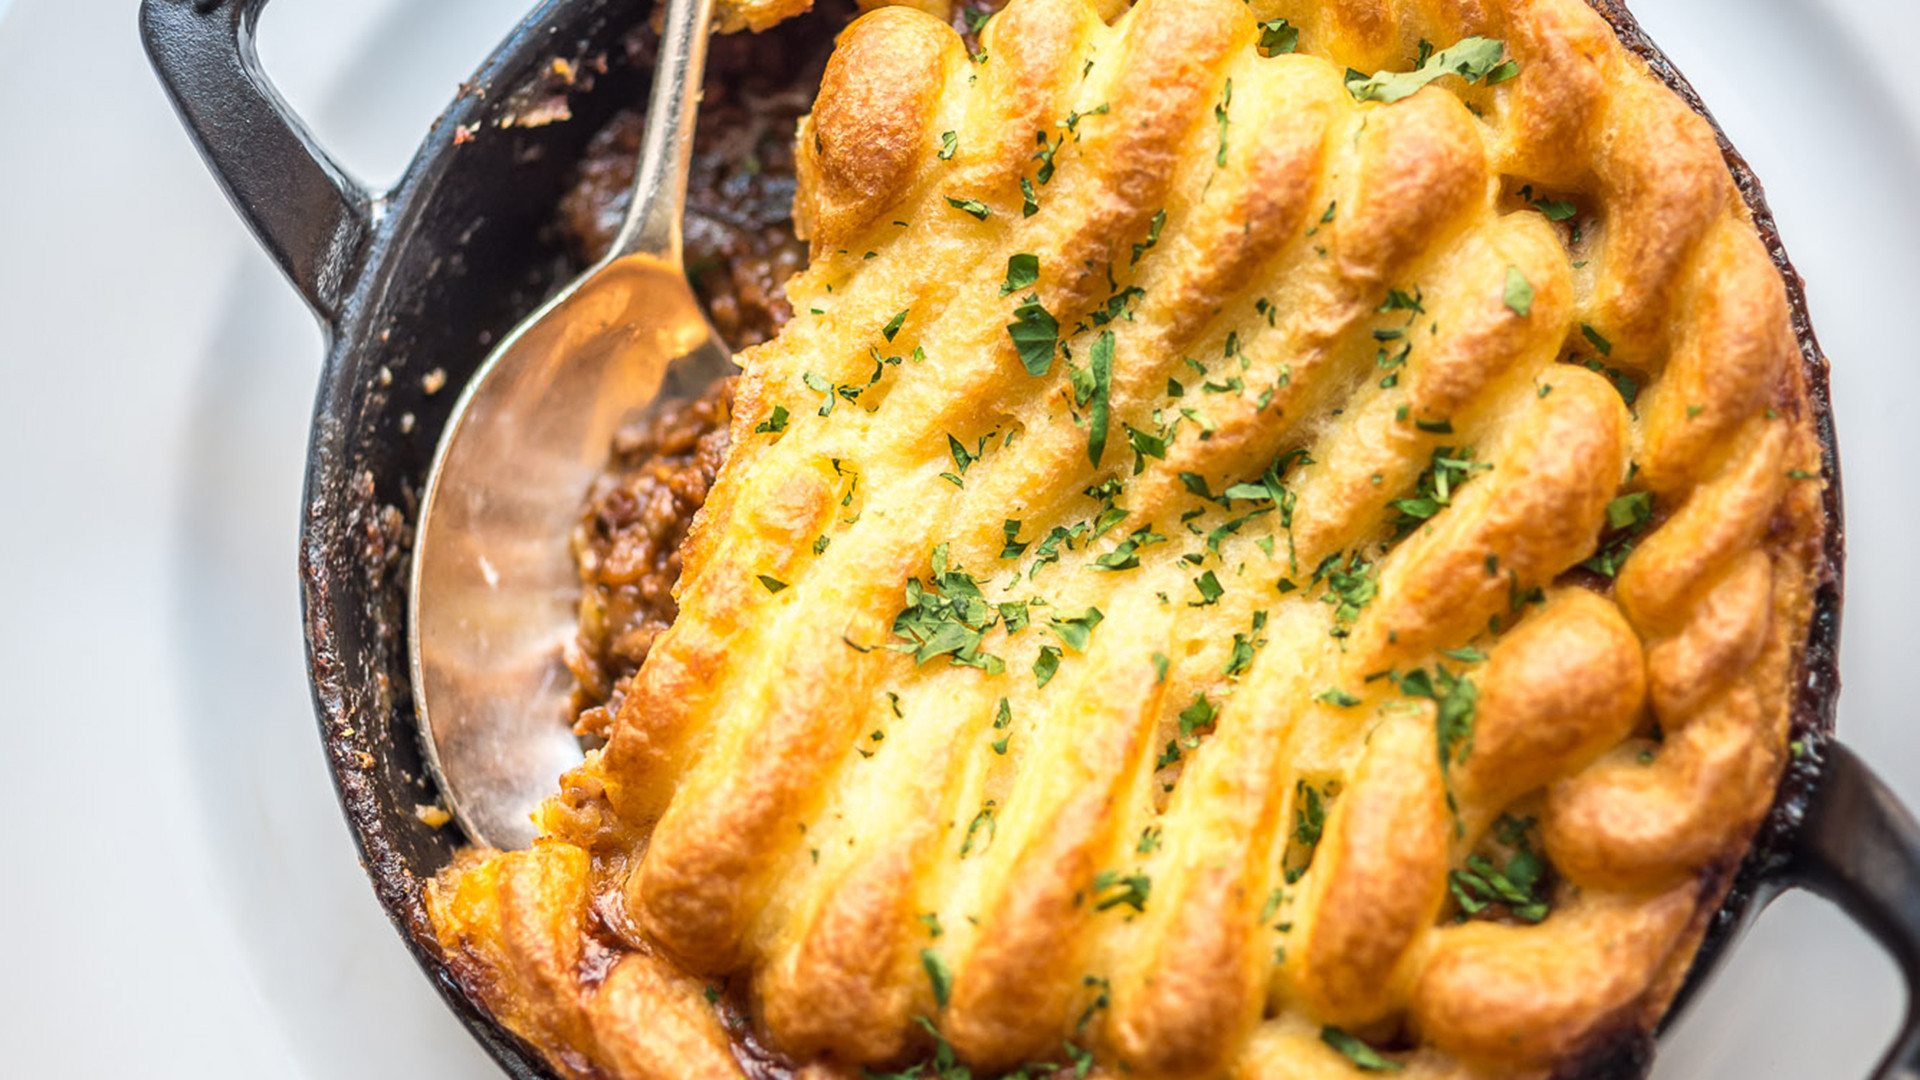 Shepherd's Pie at The Ivy